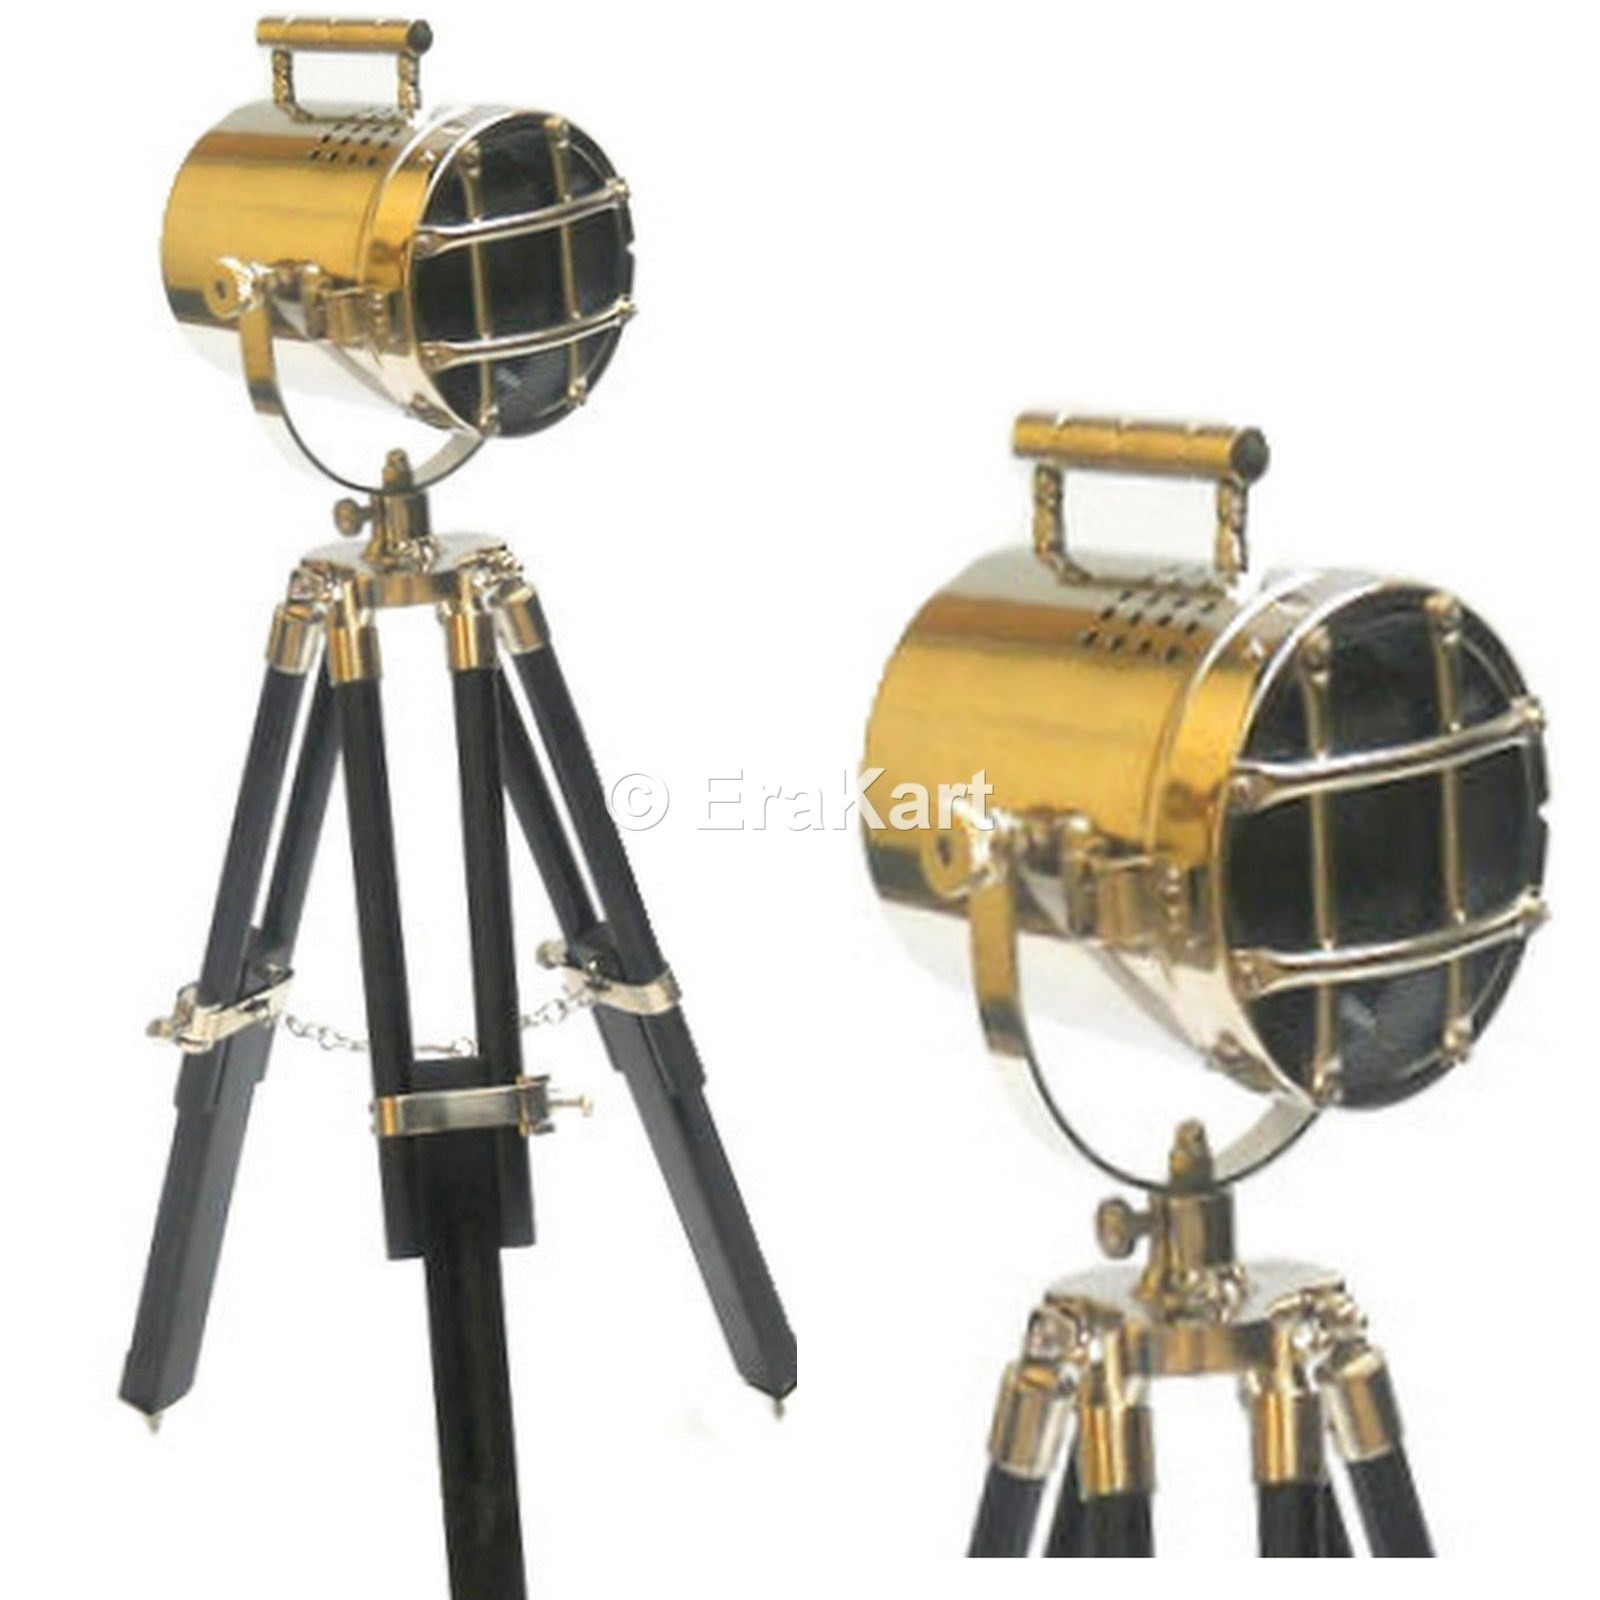 Buy Antique Nautical Hollywood Tripod Stand Spot Light Online Sale